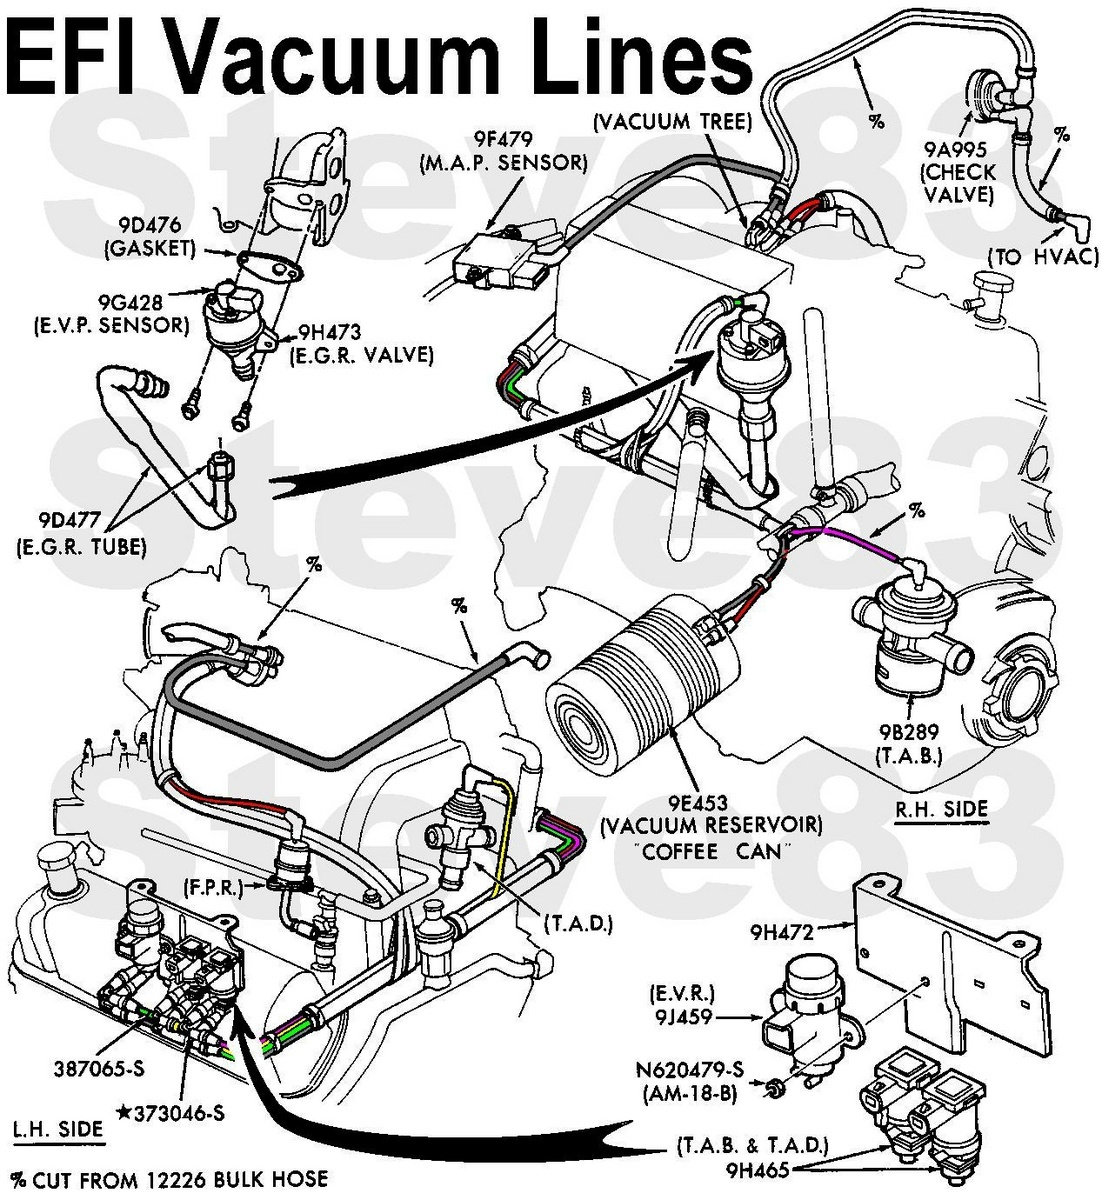 2003 Hyundai Santa Fe Spark Plug Diagram additionally 220359 Bmw V8 Engine Firing Order further Ford F150 F250 How To Replace Serpentine Belt 359906 further Pontiac 3 8 Liter Engine Schematic additionally 2006 Lincoln Zephyr Parts Diagram Html. on 3 cylinder 1 liter engine